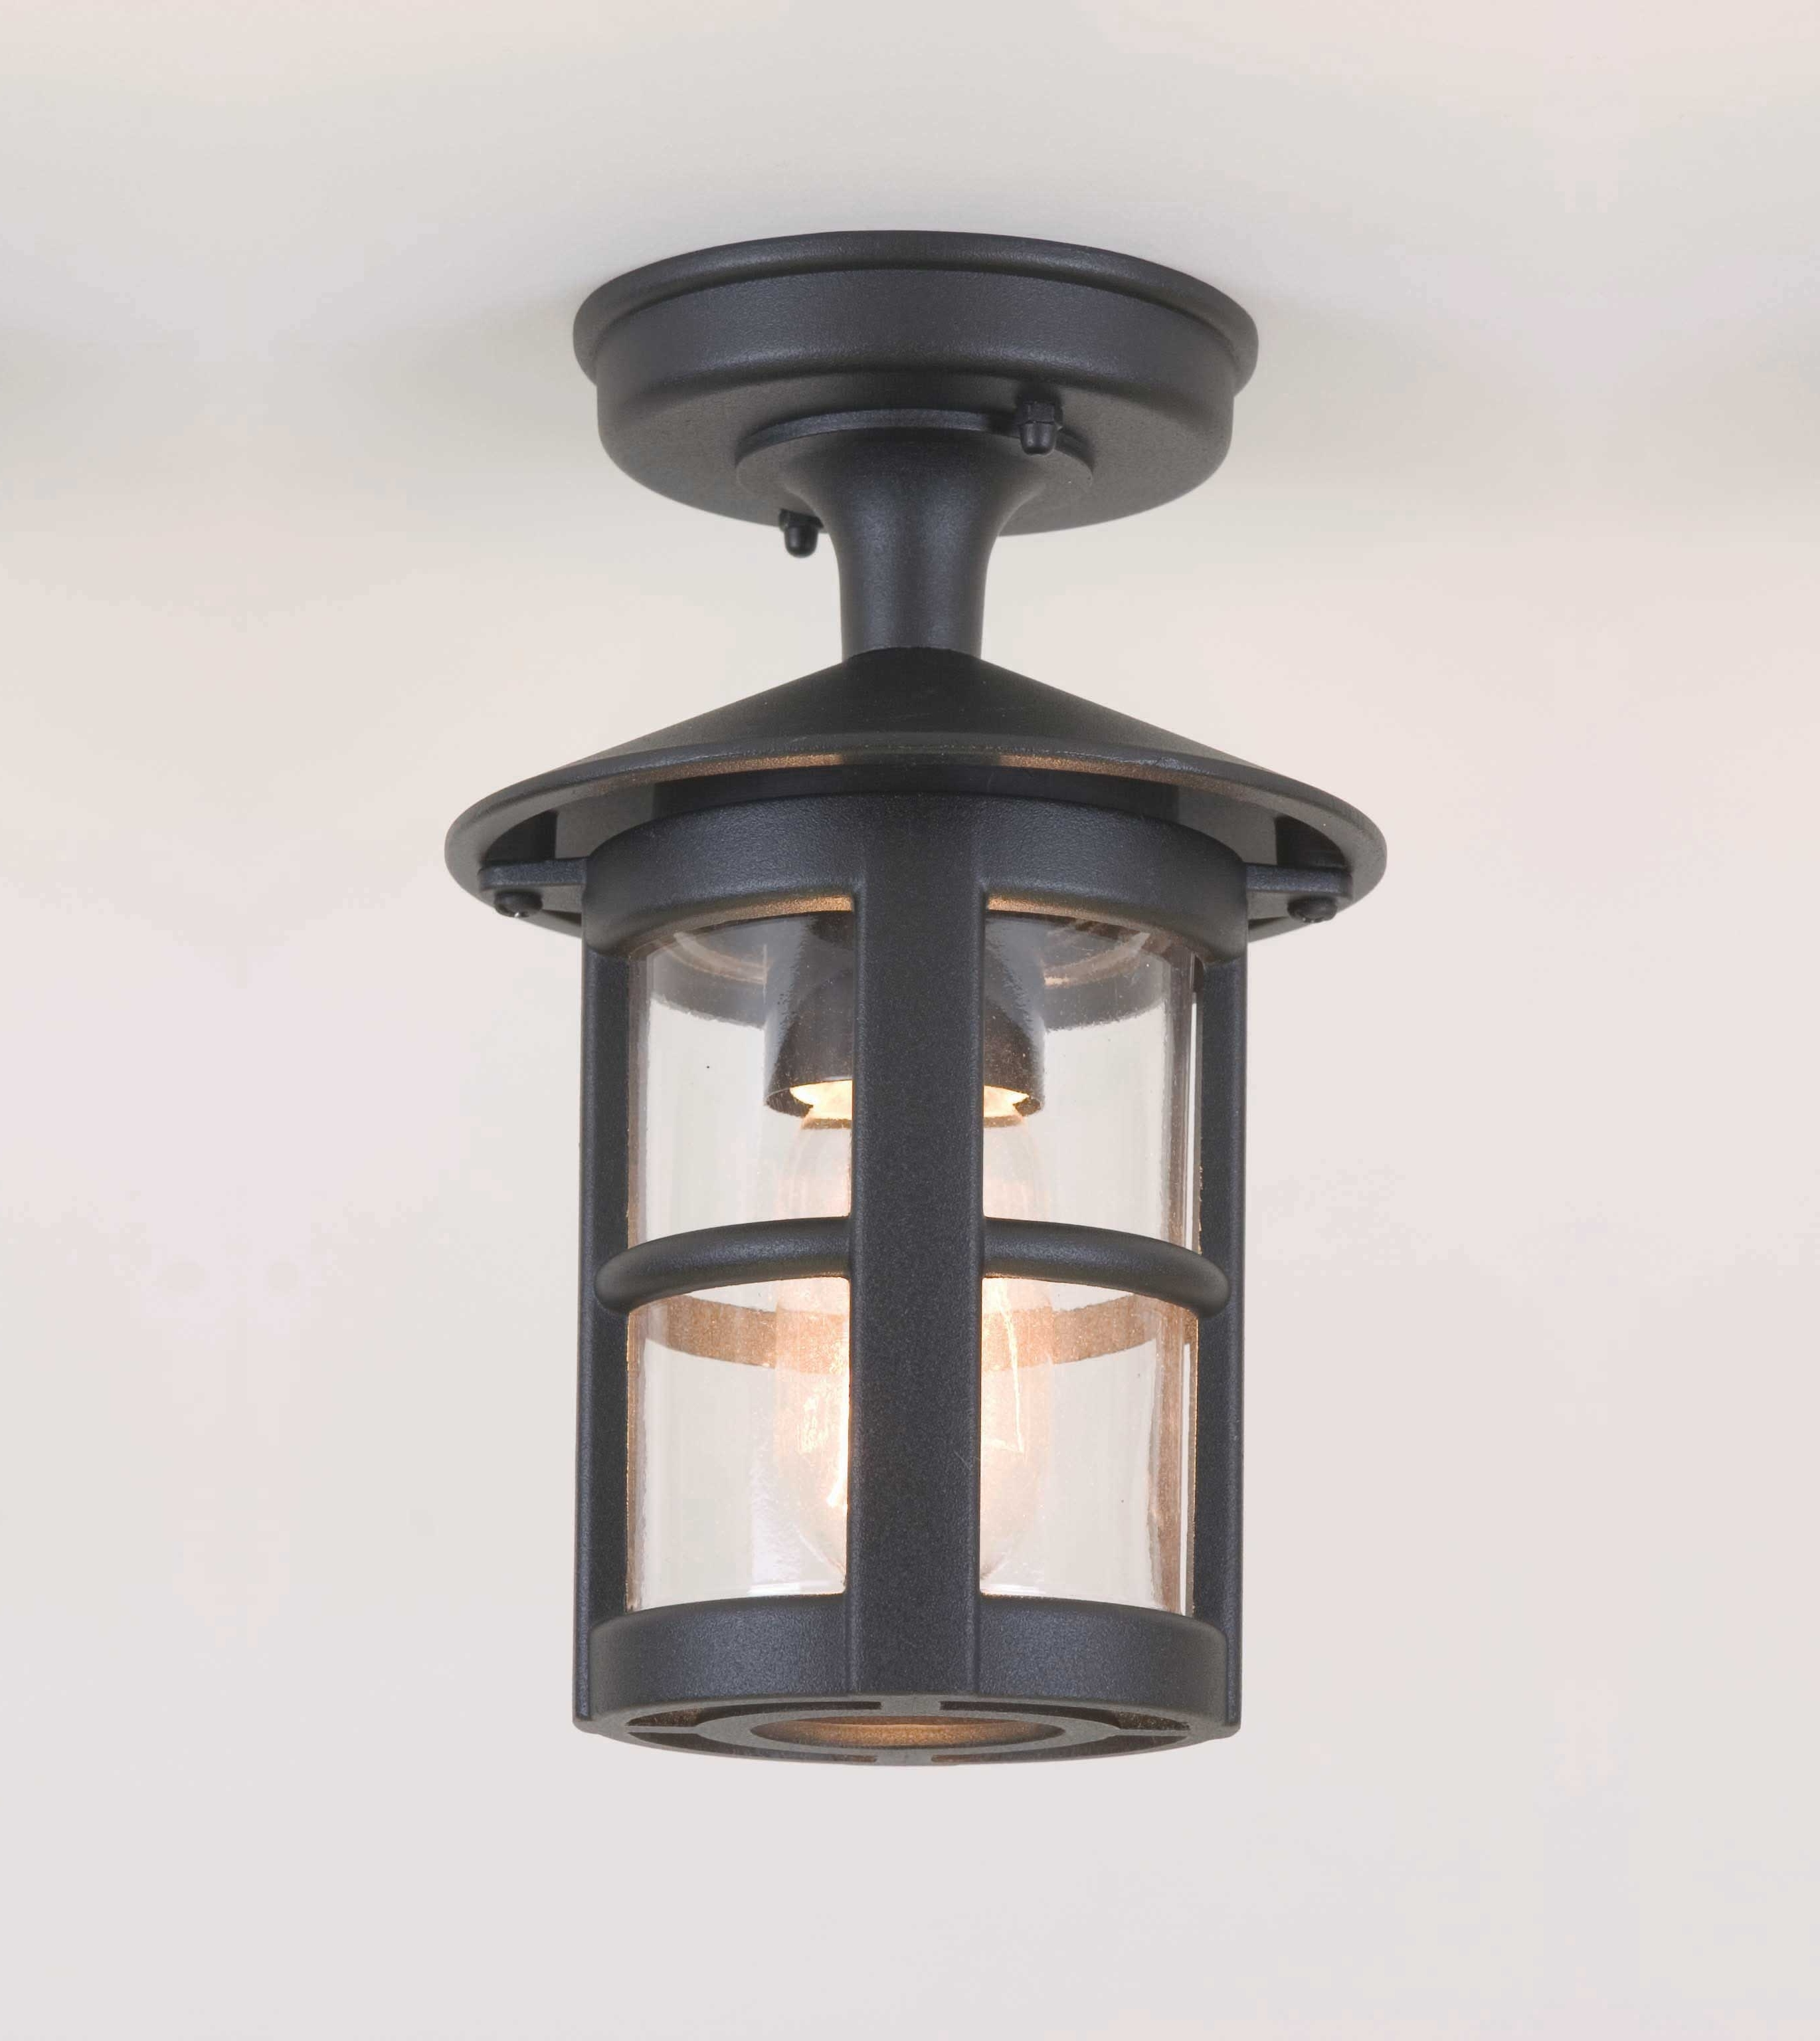 Exterior Porch Ceiling Lights • Ceiling Lights Pertaining To Trendy Outdoor Deck Ceiling Lights (View 4 of 20)